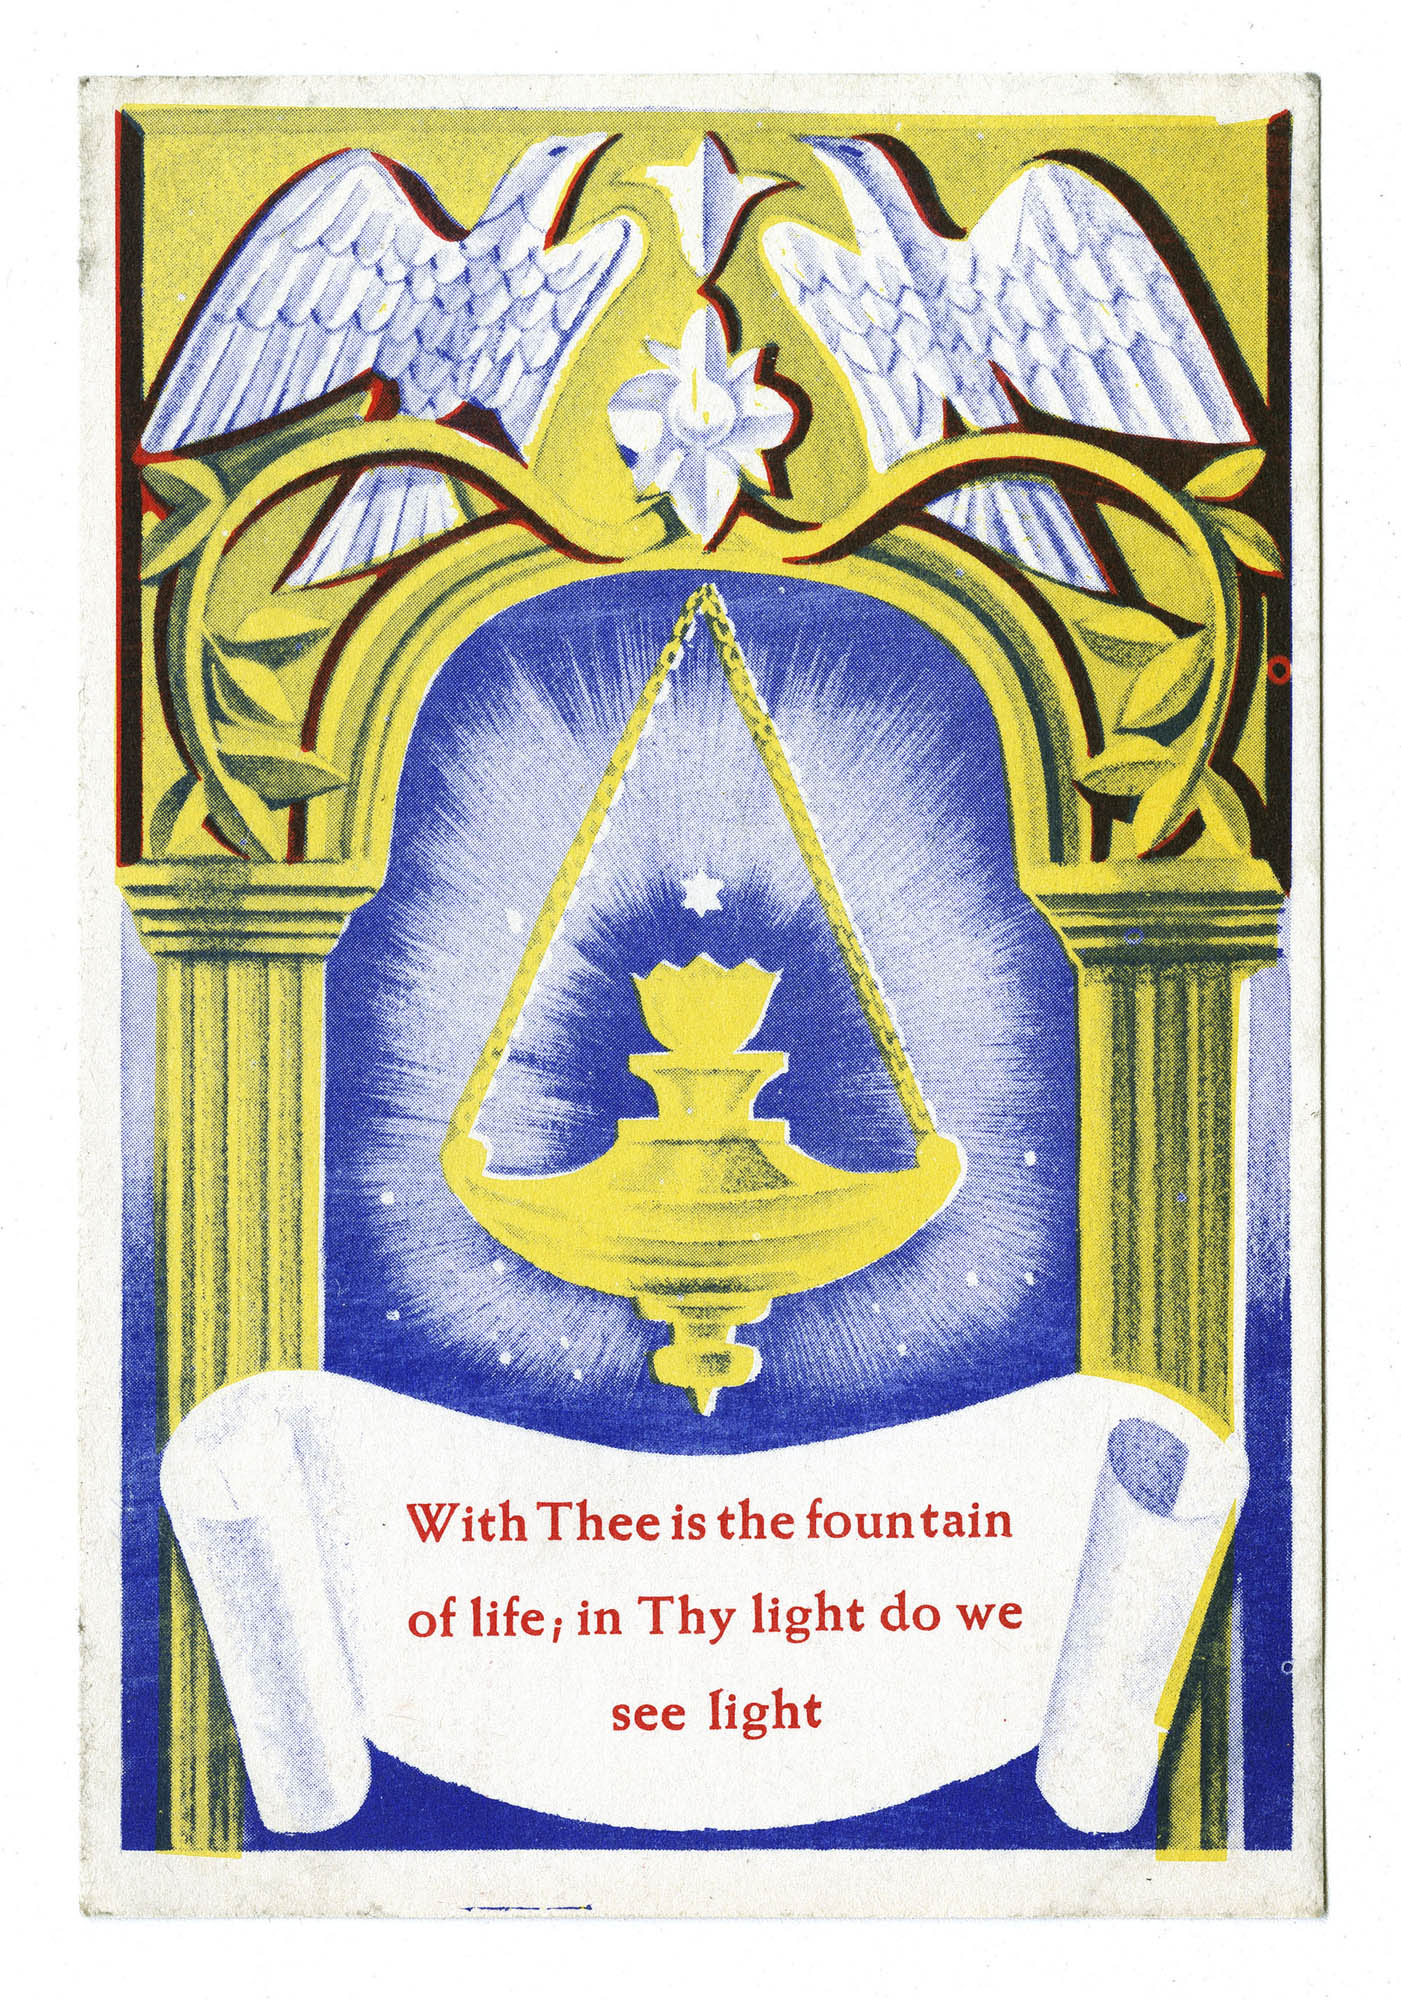 [With Thee is the fountain of life; in Thy light do we see light]